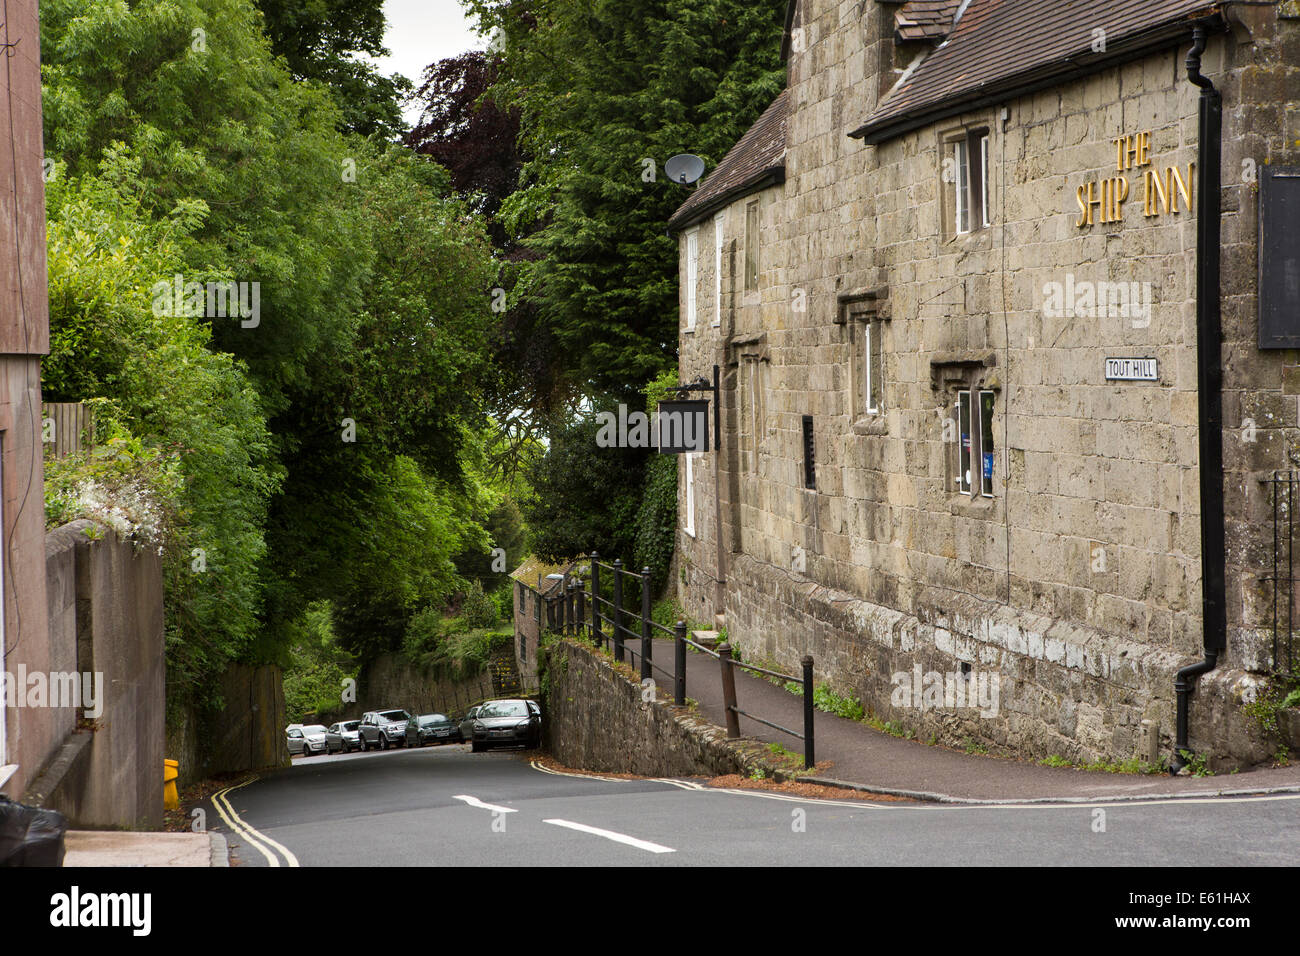 UK England, Dorset, Shaftesbury, Tout Hill, the route where water was brought up to the town - Stock Image